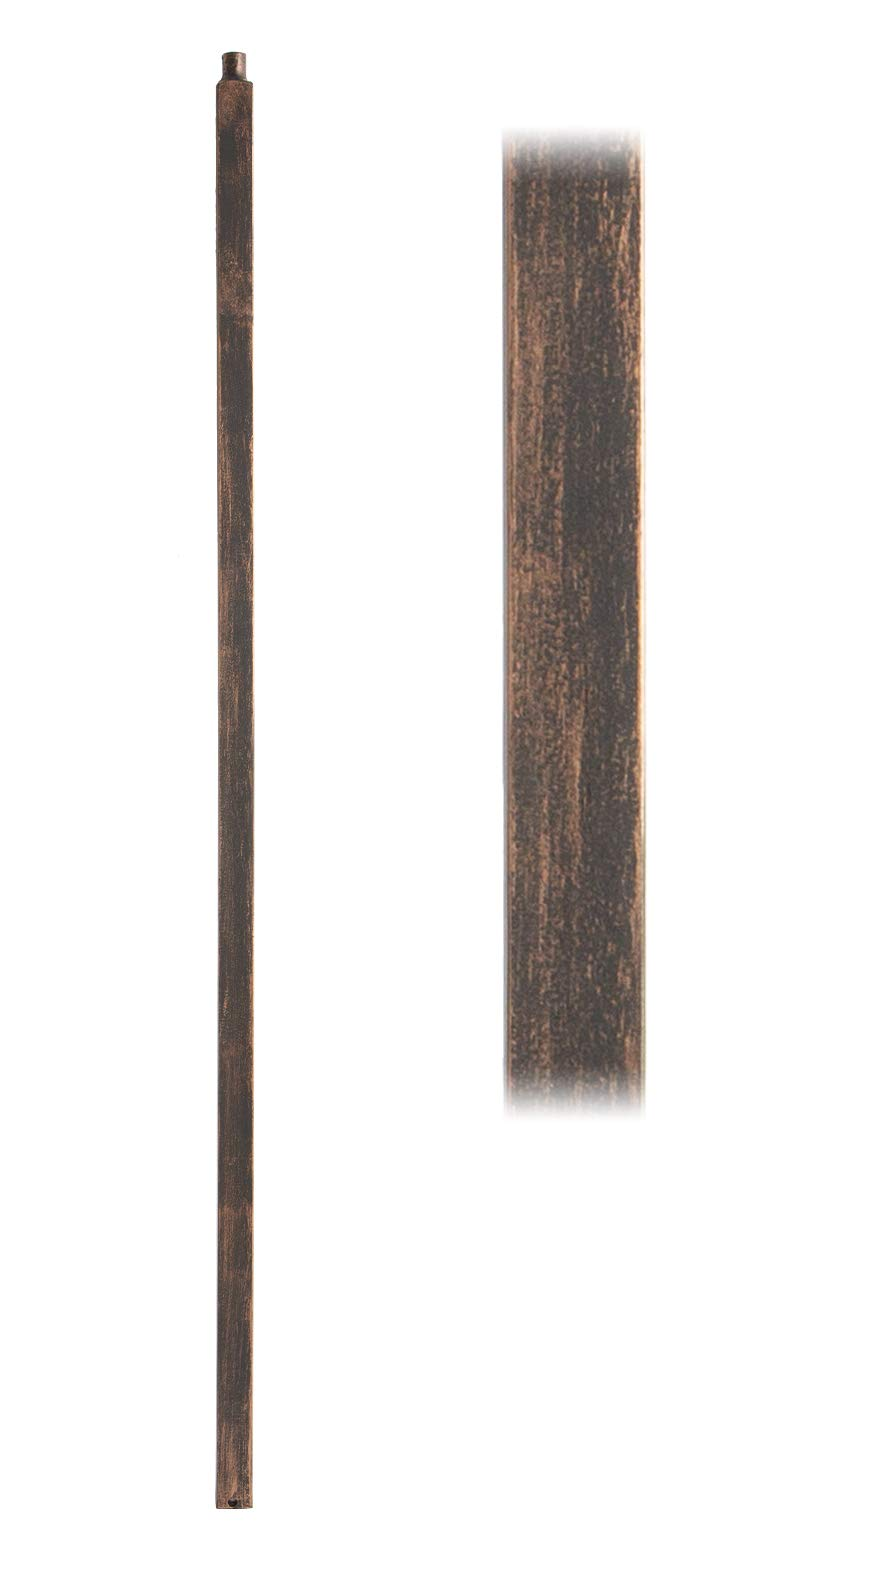 Oil Rubbed Bronze 16.5.8 Plain Square Iron Newel Support Post for Stair Remodeling by House of Forgings